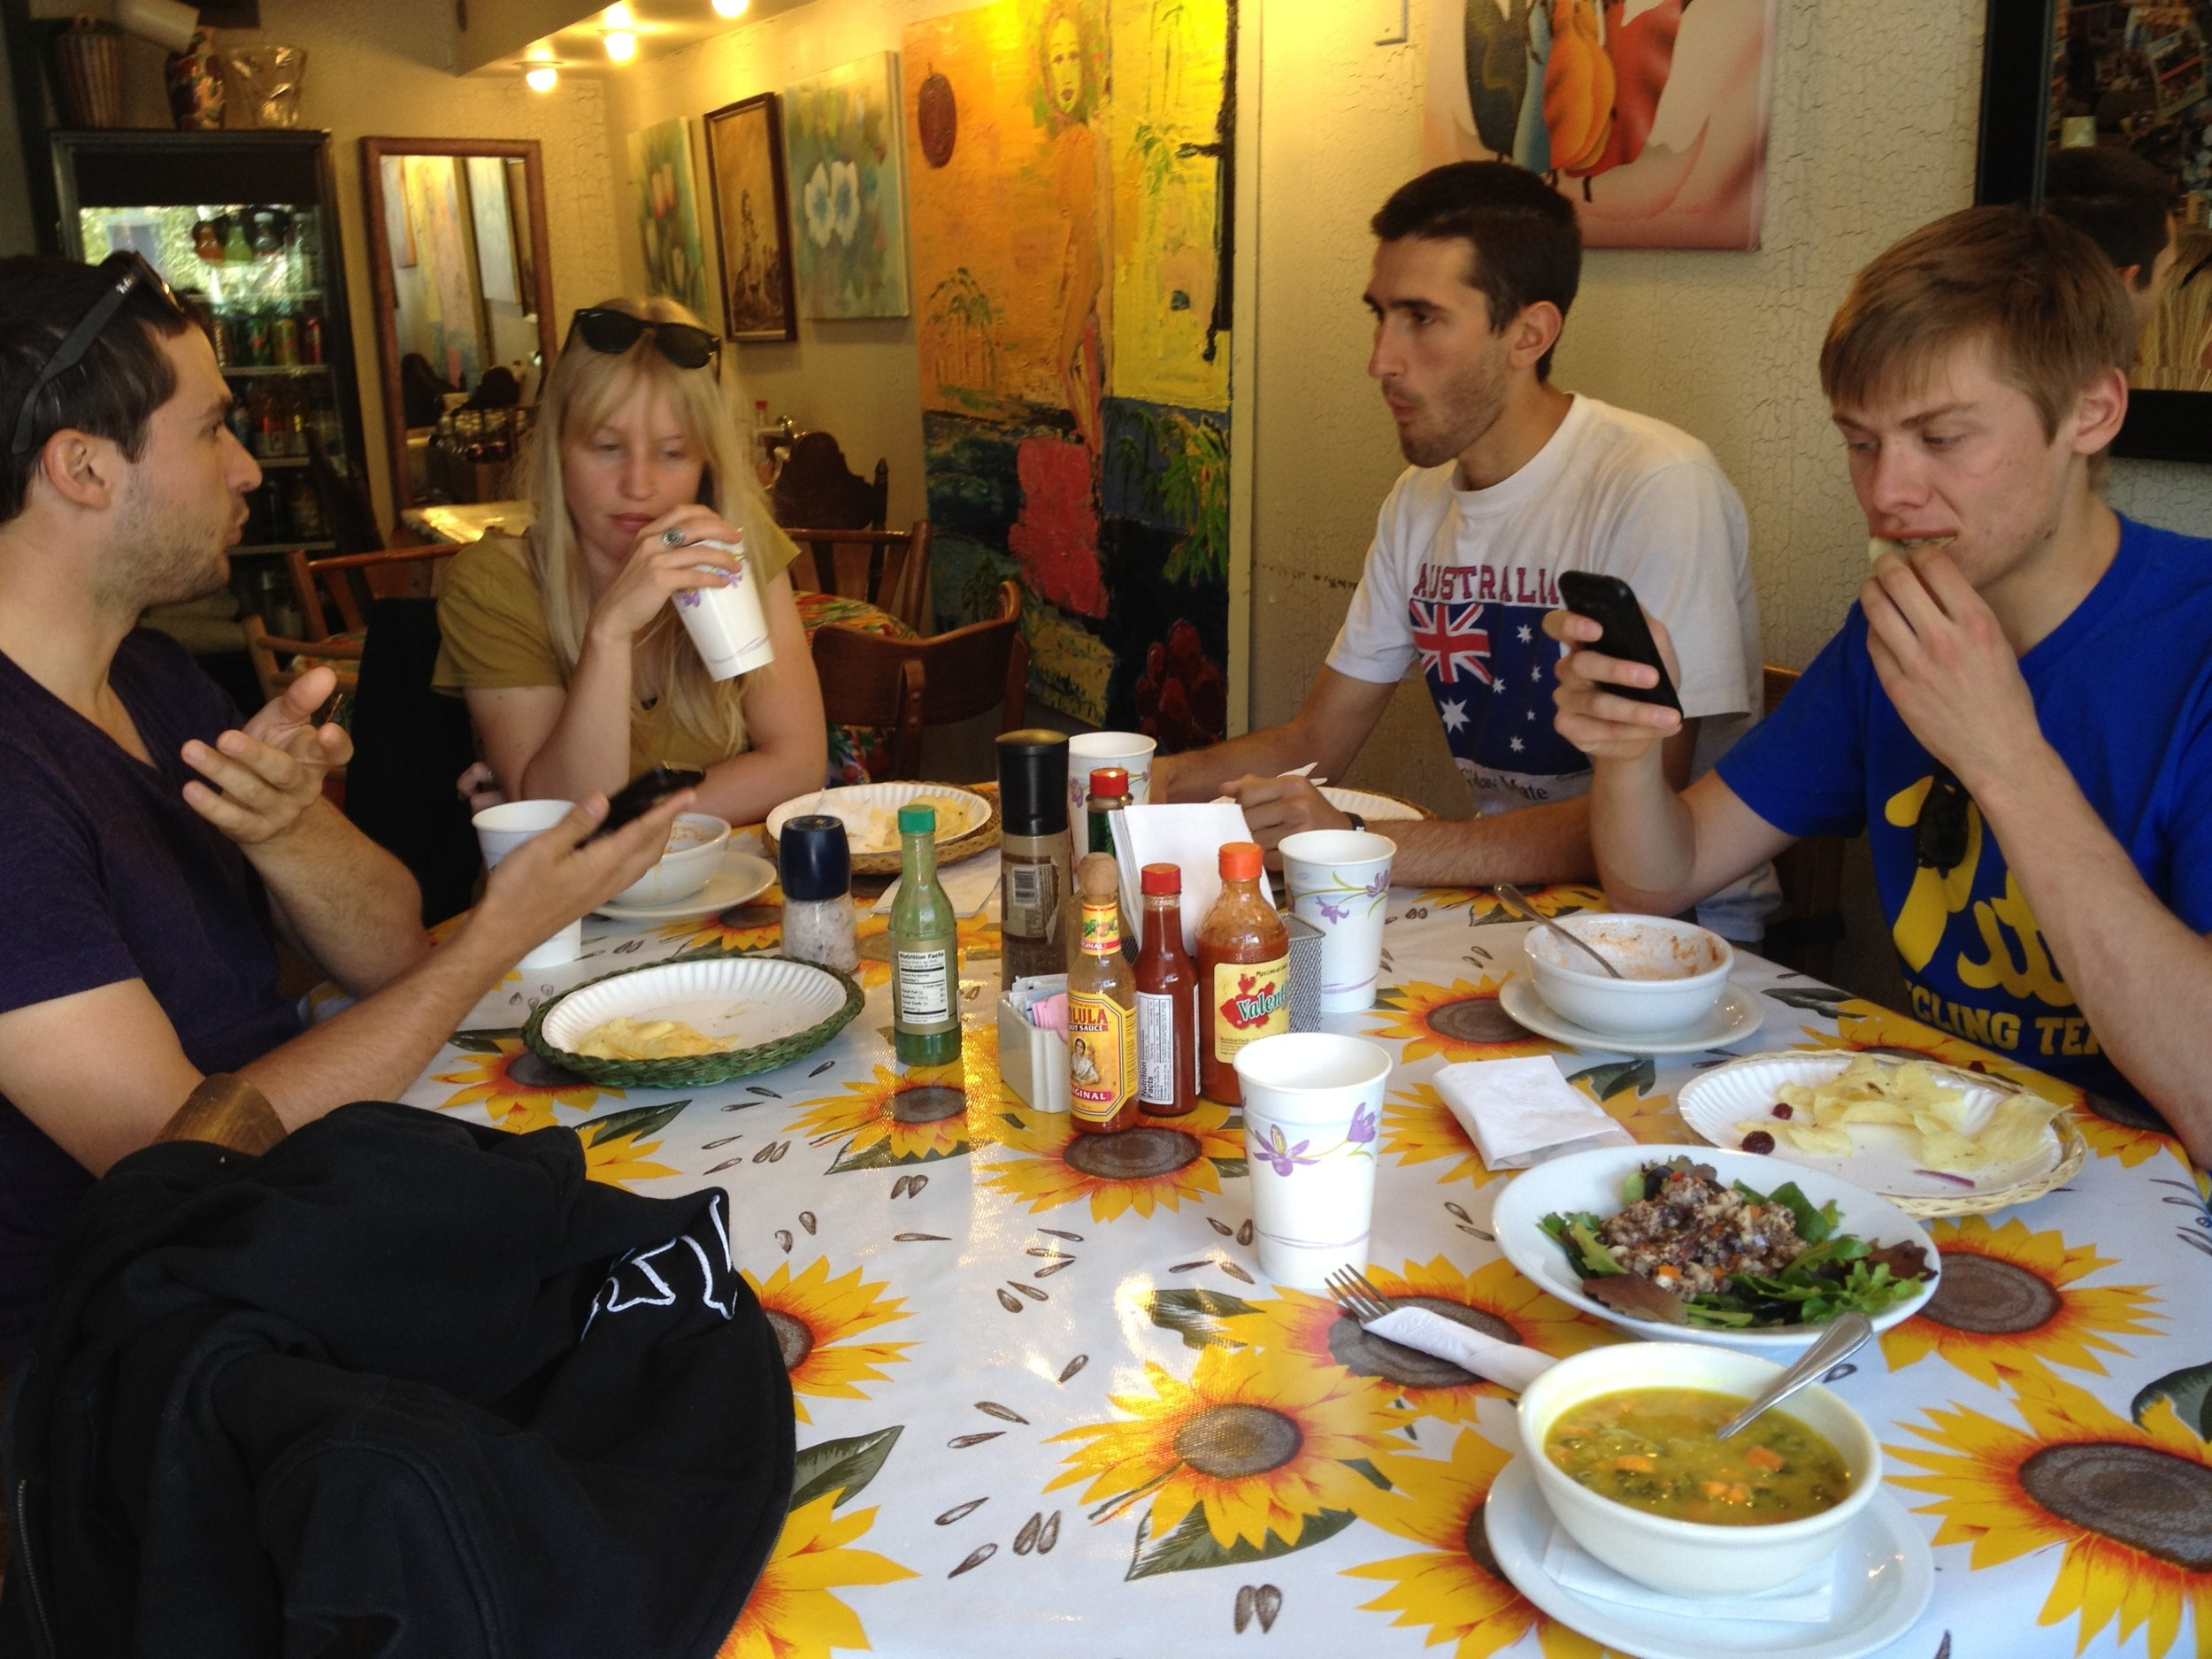 Post-Ride meals are an important part of training and racing, but can totally derail your efforts to lean out, IF you are not careful!